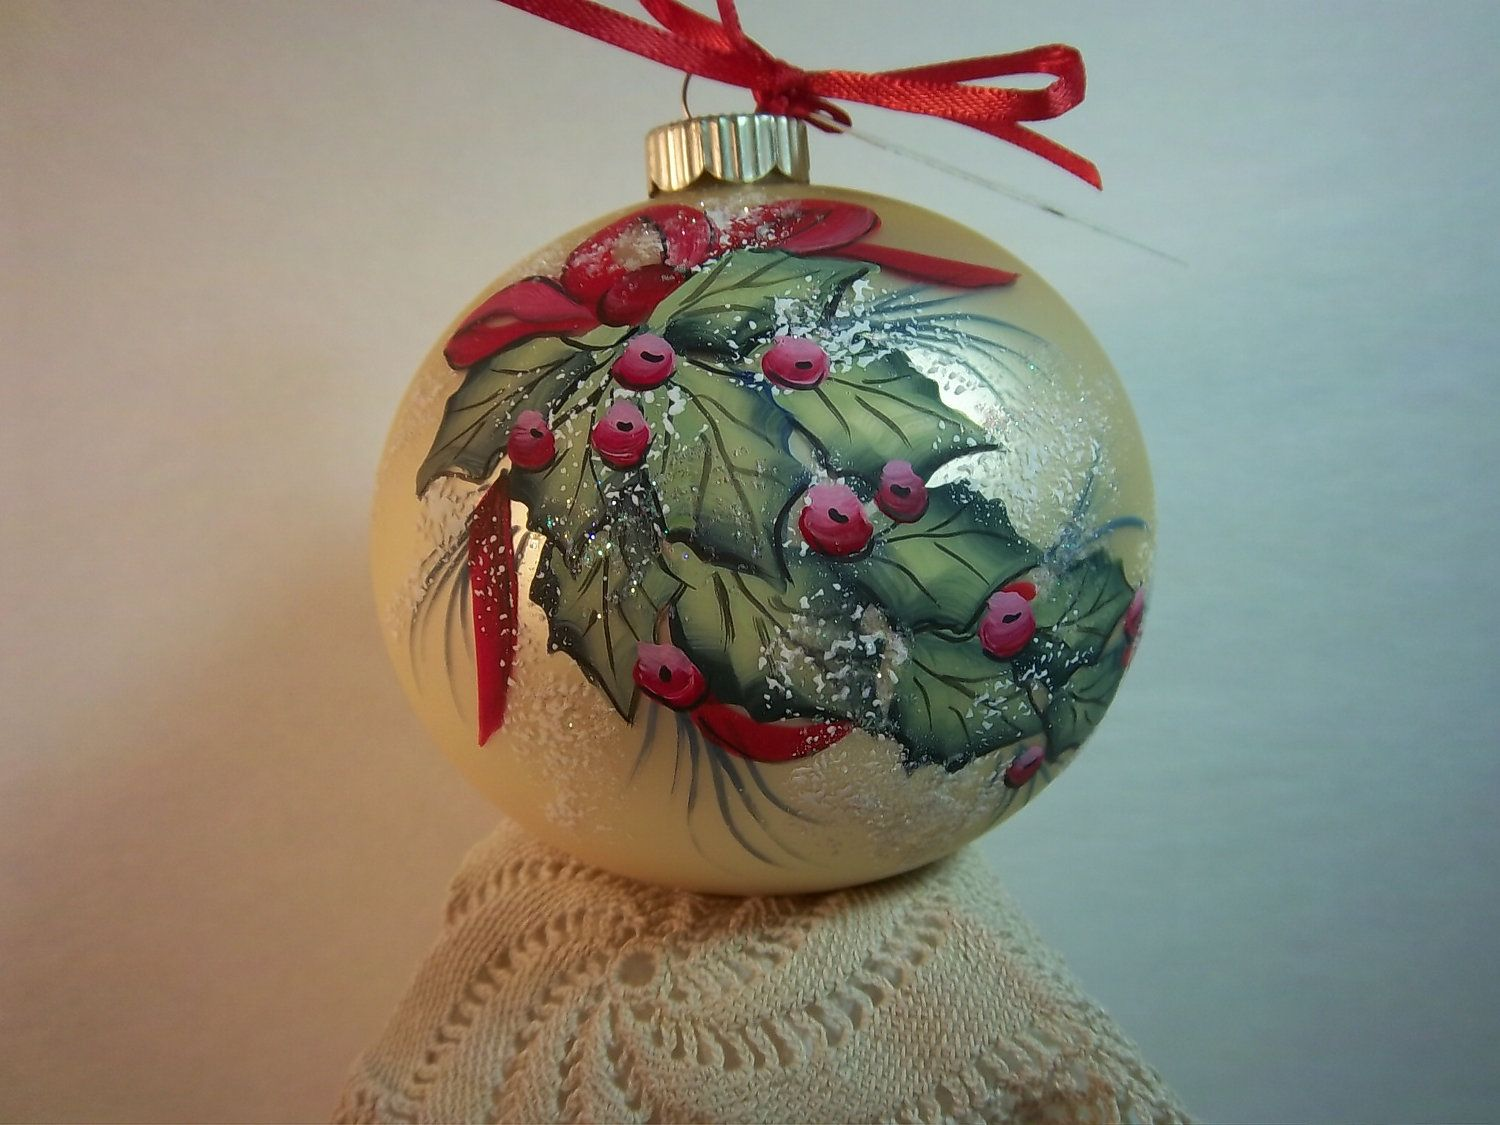 Pin By Jane Dominguez On Ornaments Painted Christmas Ornaments Handpainted Christmas Ornaments Christmas Ornaments